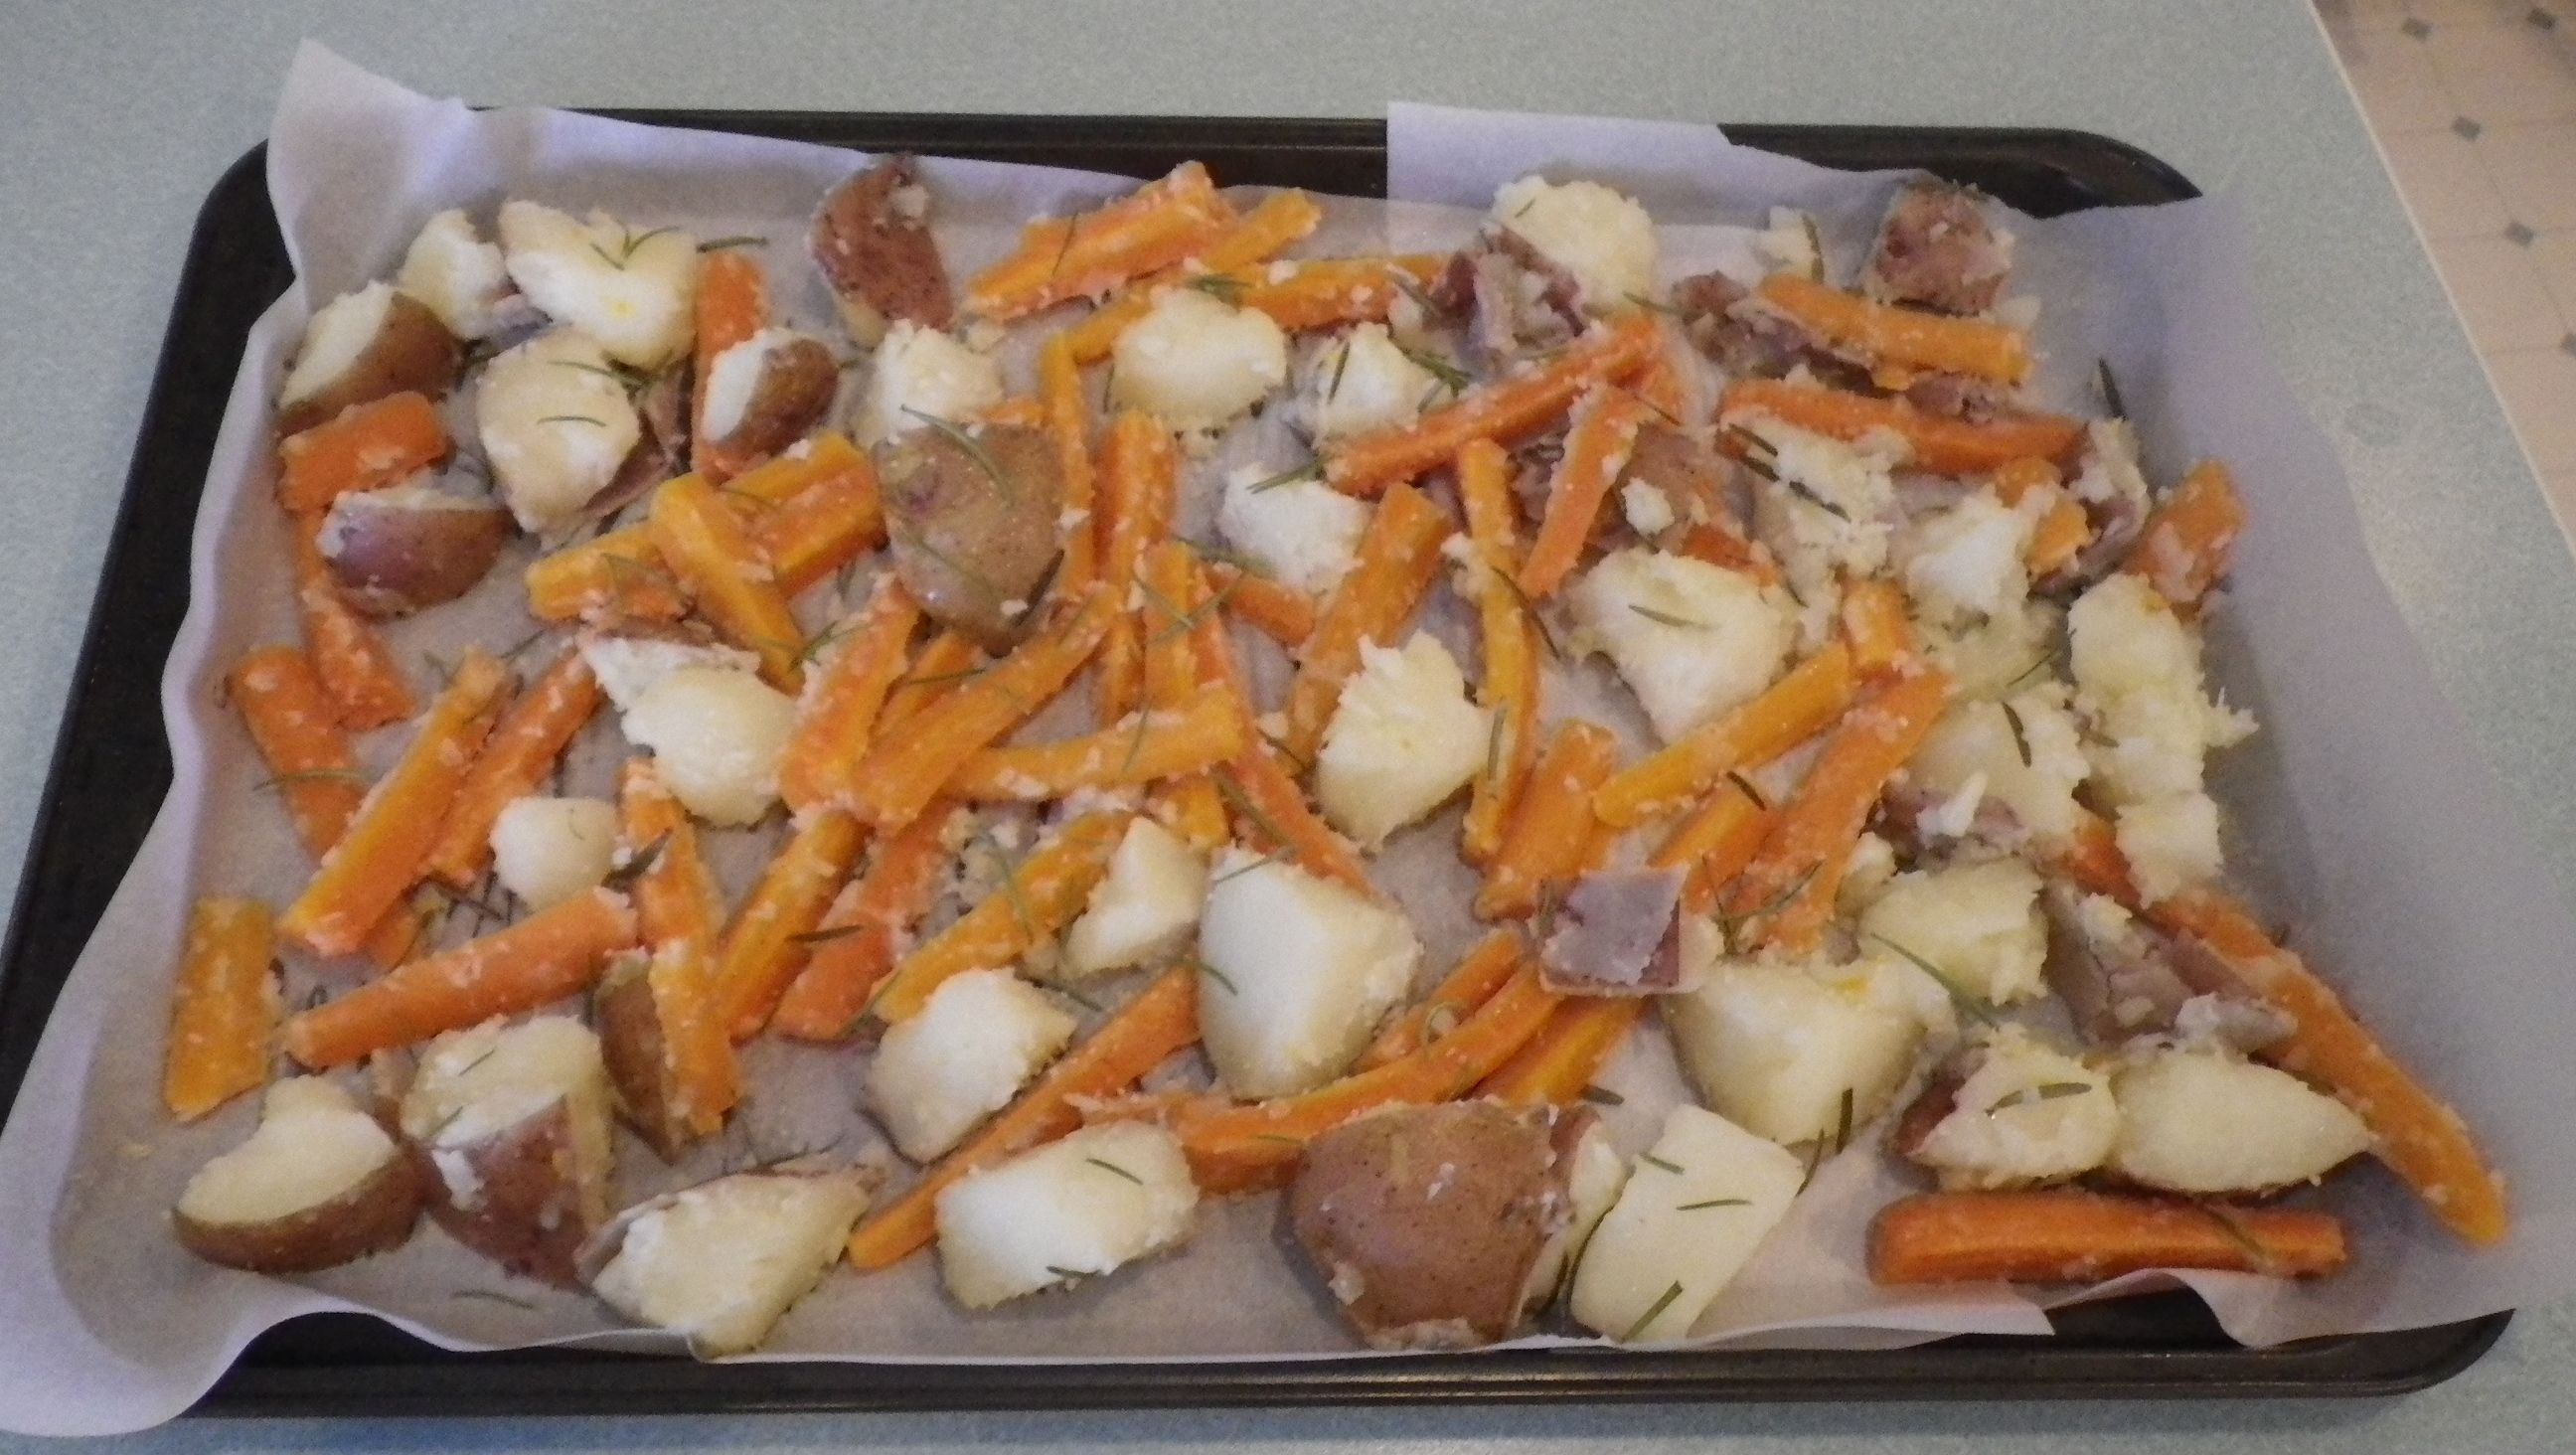 Roast Carrots & Potatoes Part 2 Drain the water from the pot. In a large bowl mash up the cooked garlic cloves and orange (rind removed). Add 2-3 tbs of butter or olive oil or any other fat to the bowl and toss the carrots and potatoes till coated. Then spread out on a lined tray and sprinkle with salt. Roast in a 400F oven 40 minutes.